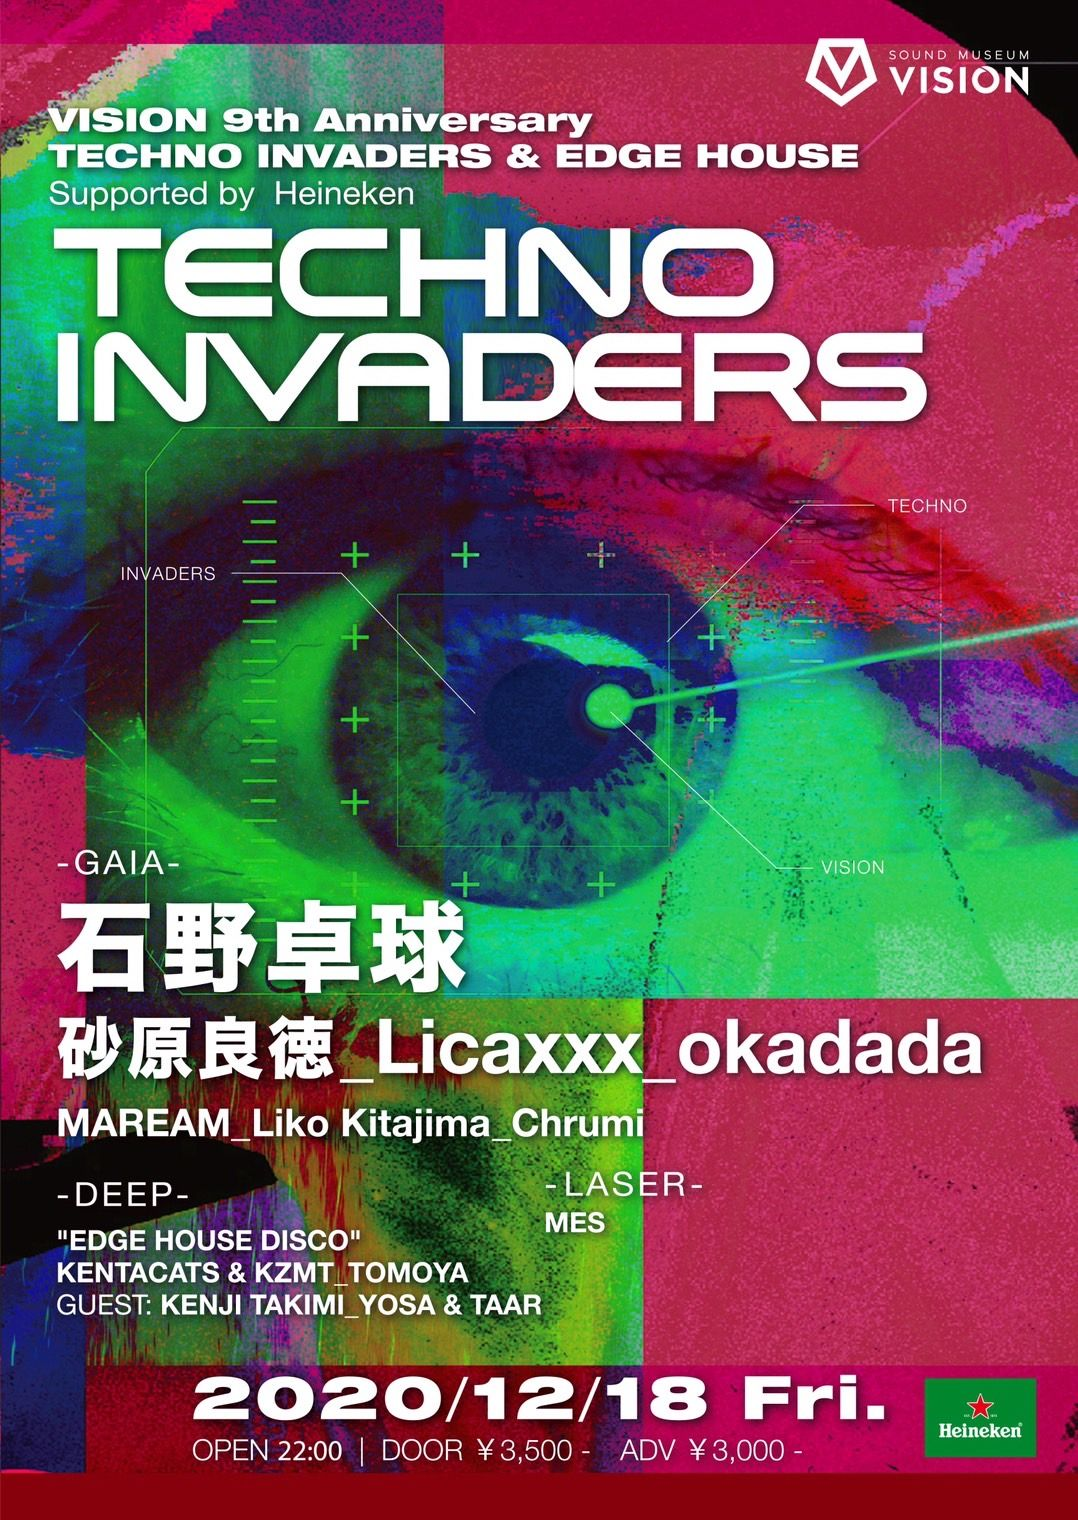 VISION 9th Anniversary TECHNO INVADERS & EDGE HOUSE Supported by  Heineken